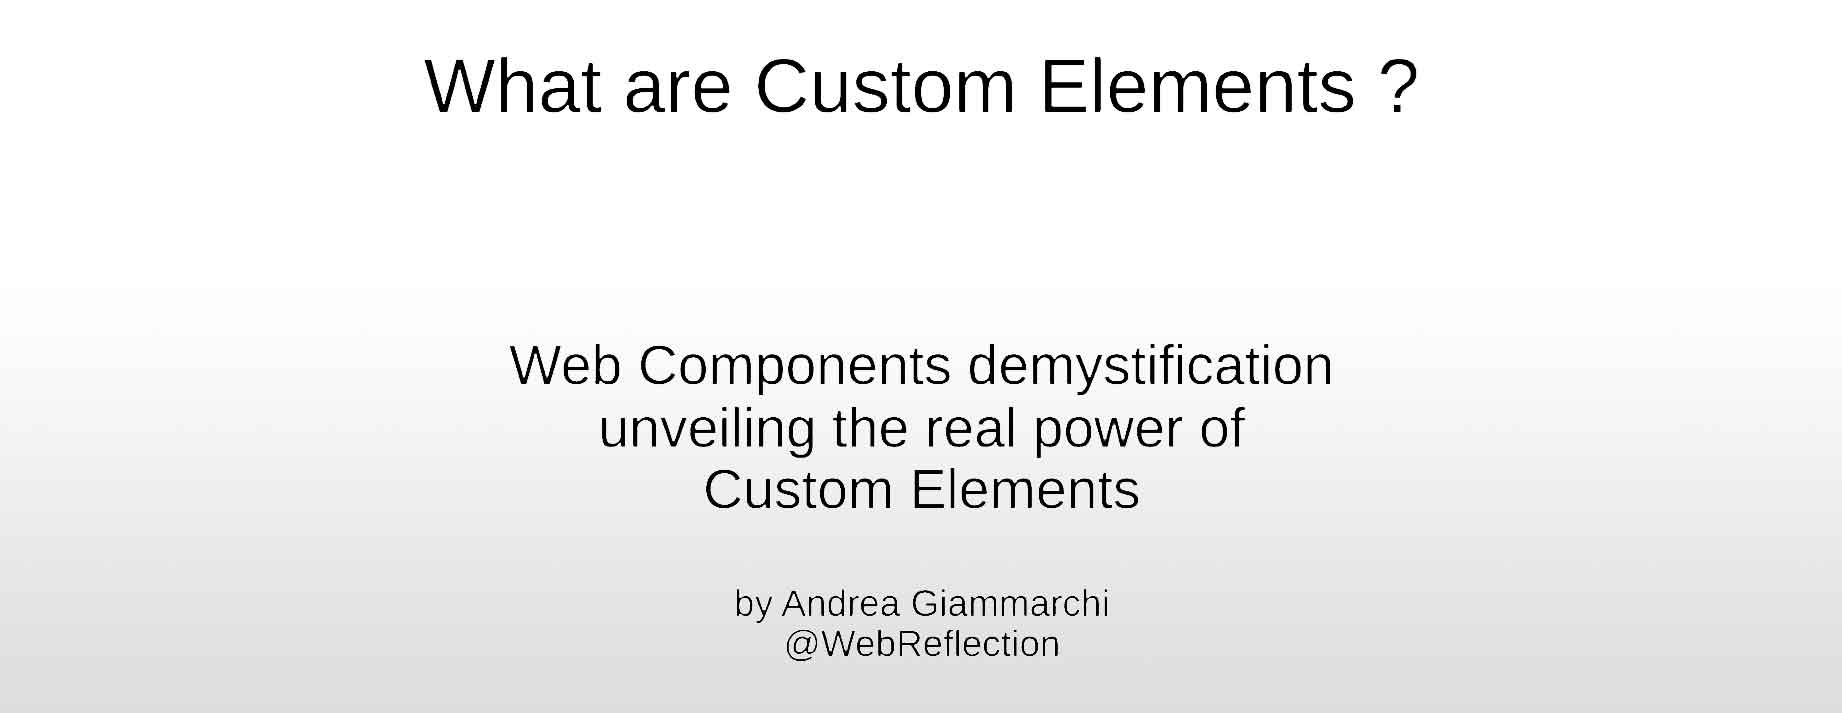 What are Custom Elements?